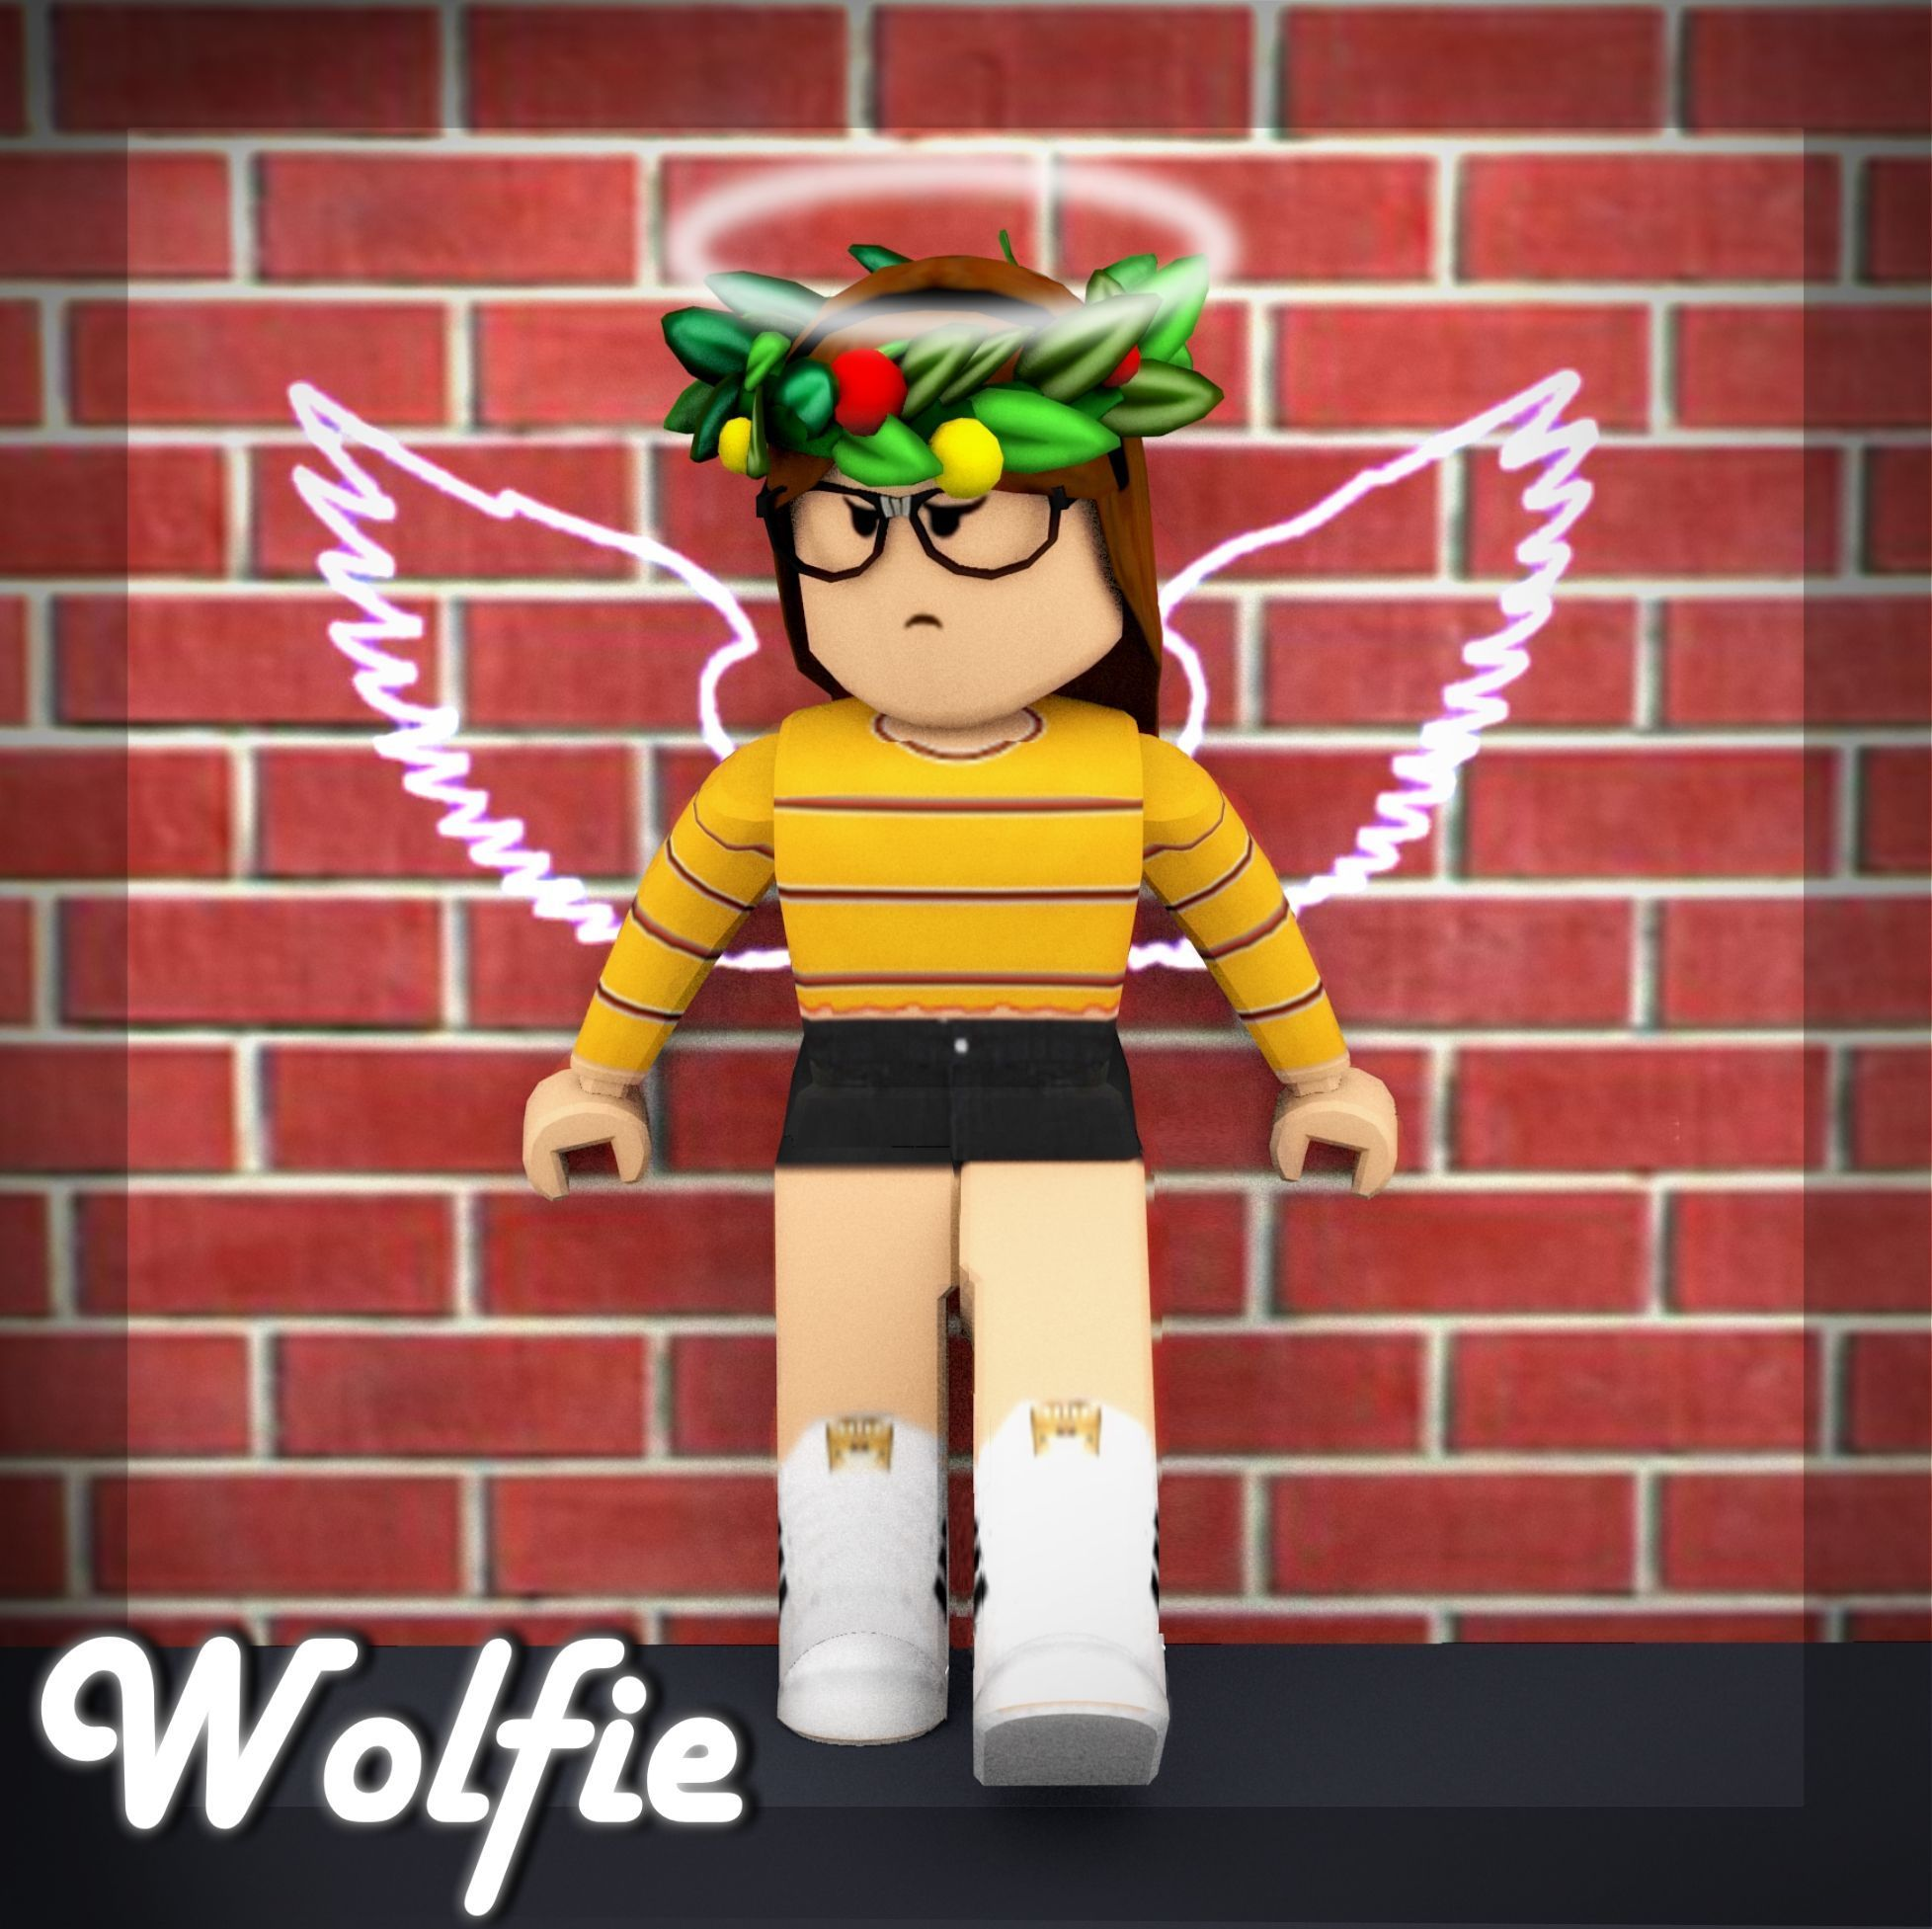 Roblox Character Aesthetic Wallpapers - Wallpaper Cave